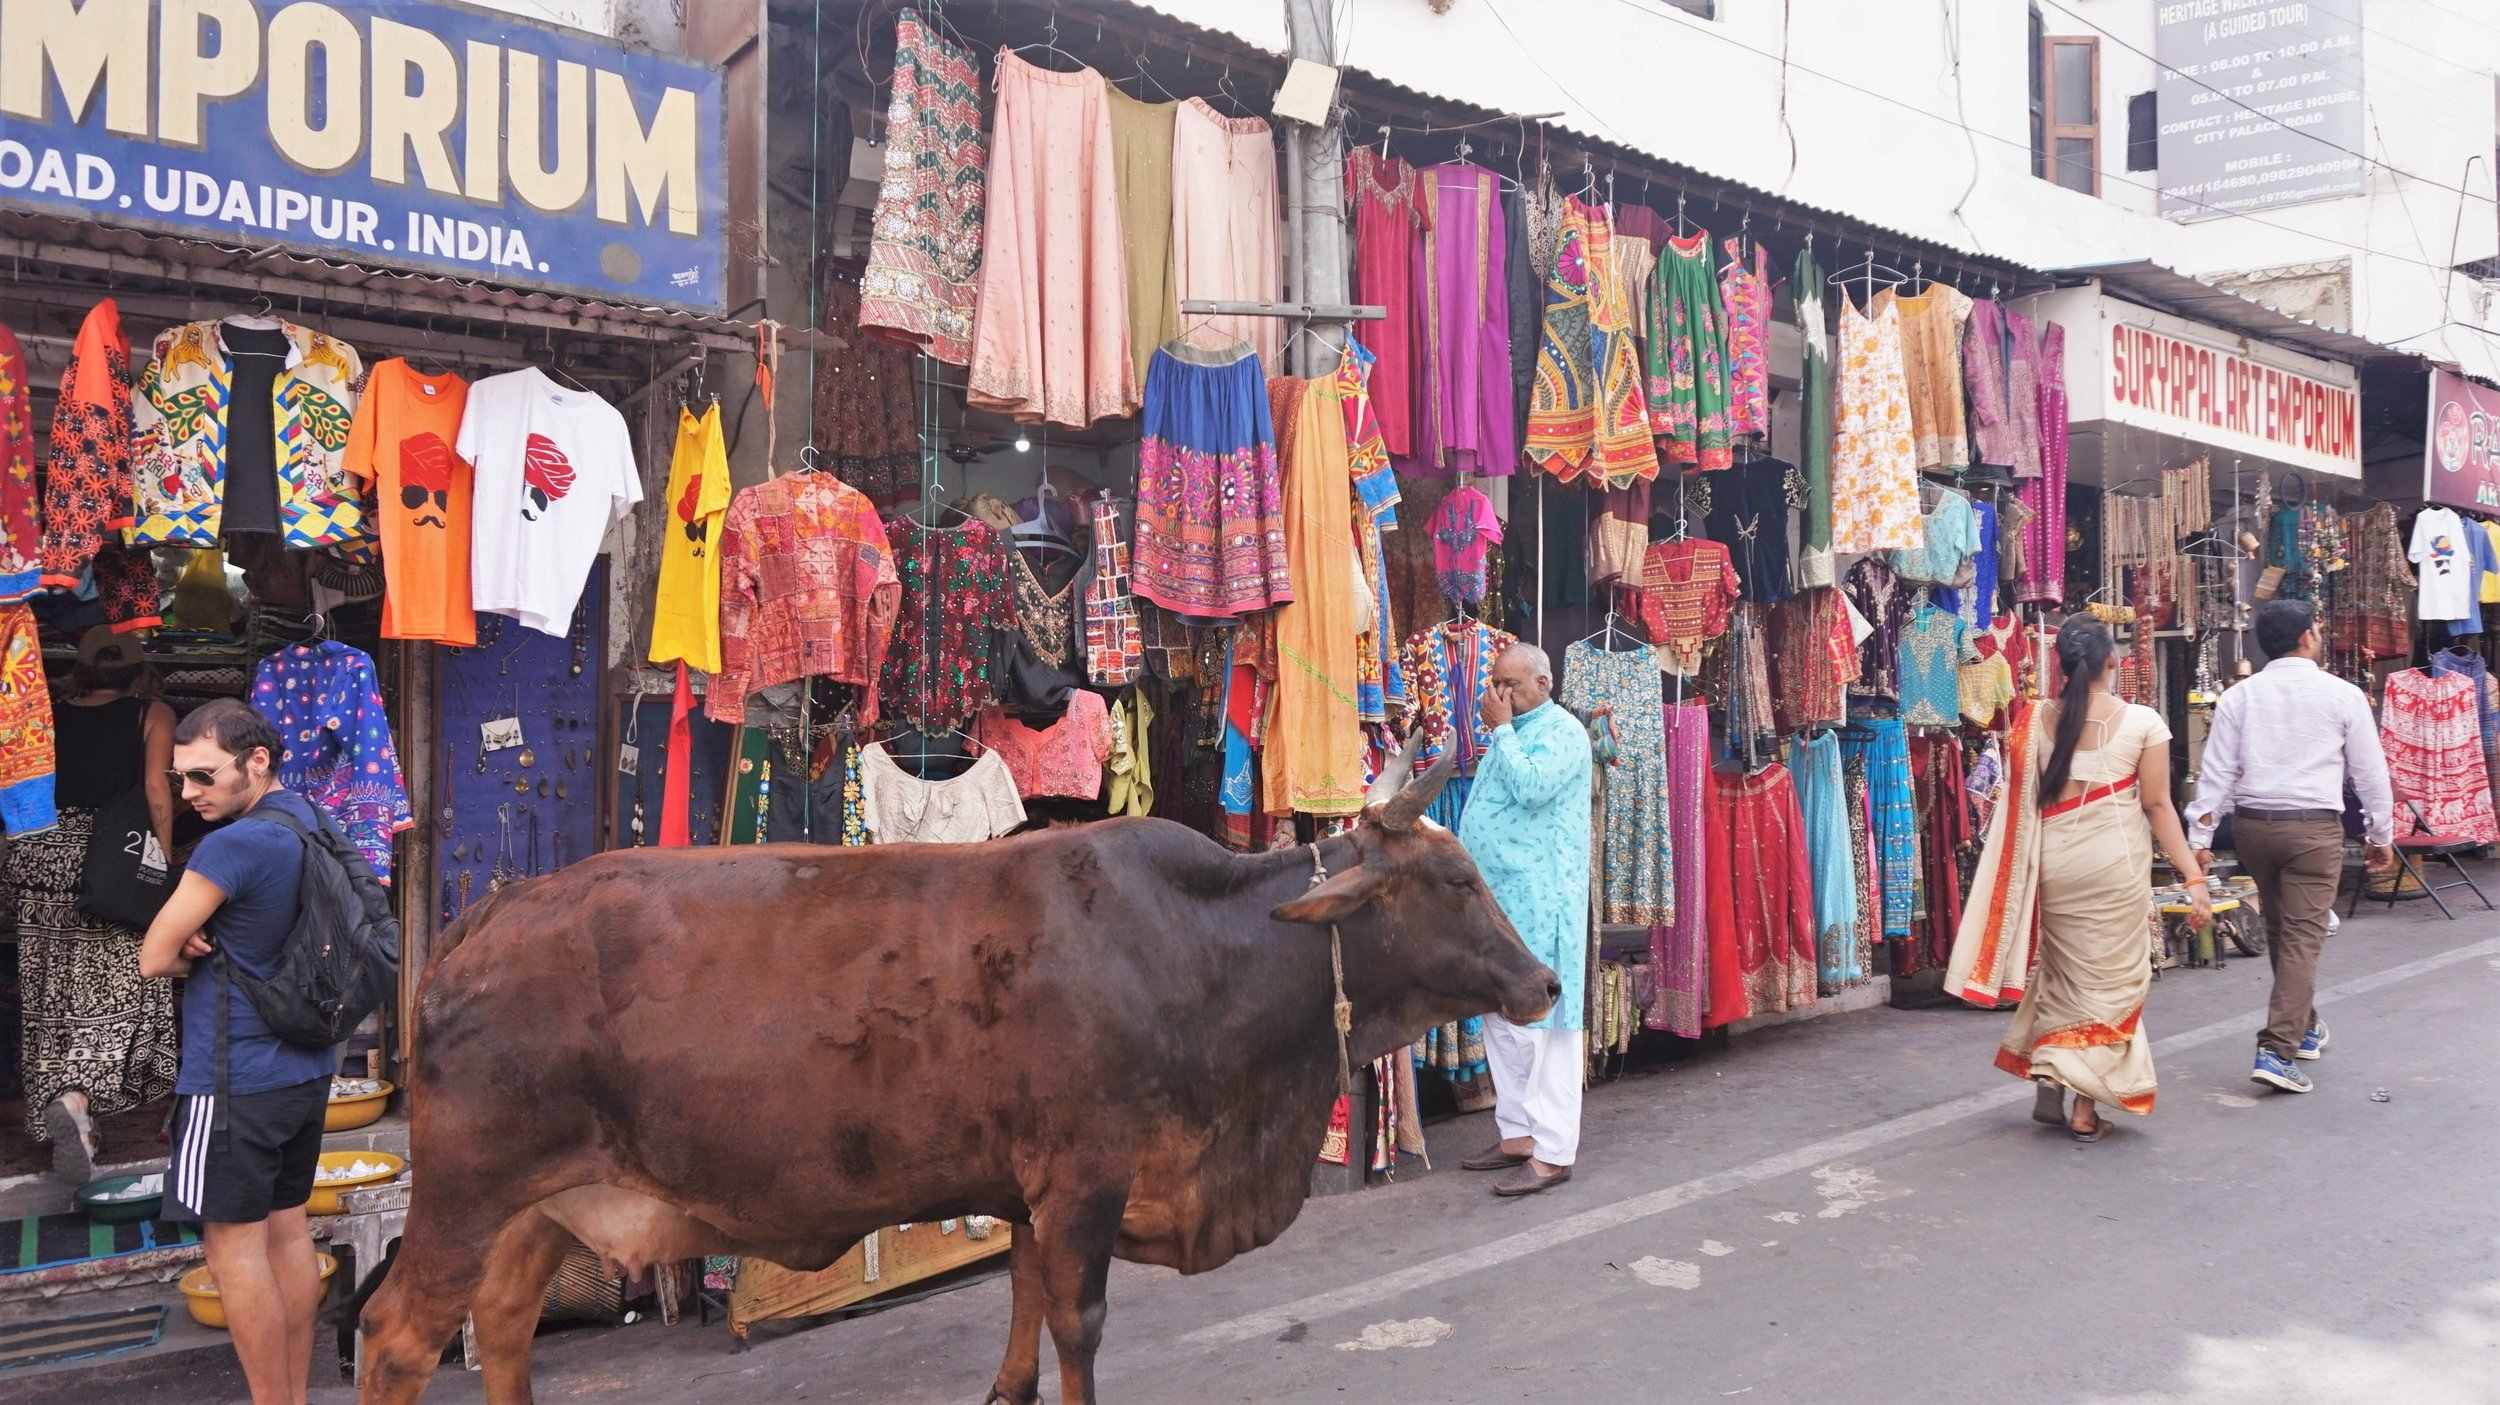 There are many places to visit in Udaipur if you want to find some nice clothing.